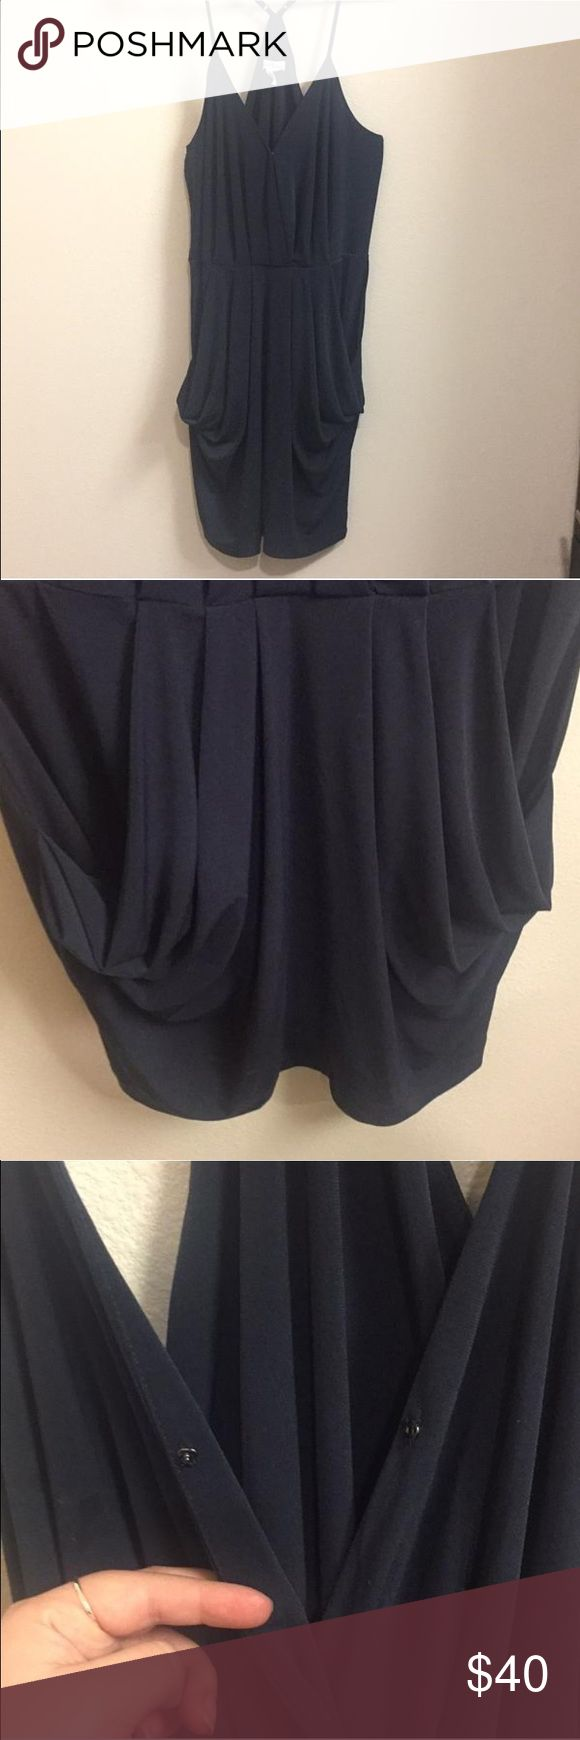 Bcbgeneration Evening Dress The perfect night-out dress//fitted with draped details//stretchy comfortable fabric//navy BCBGeneration Dresses Mini